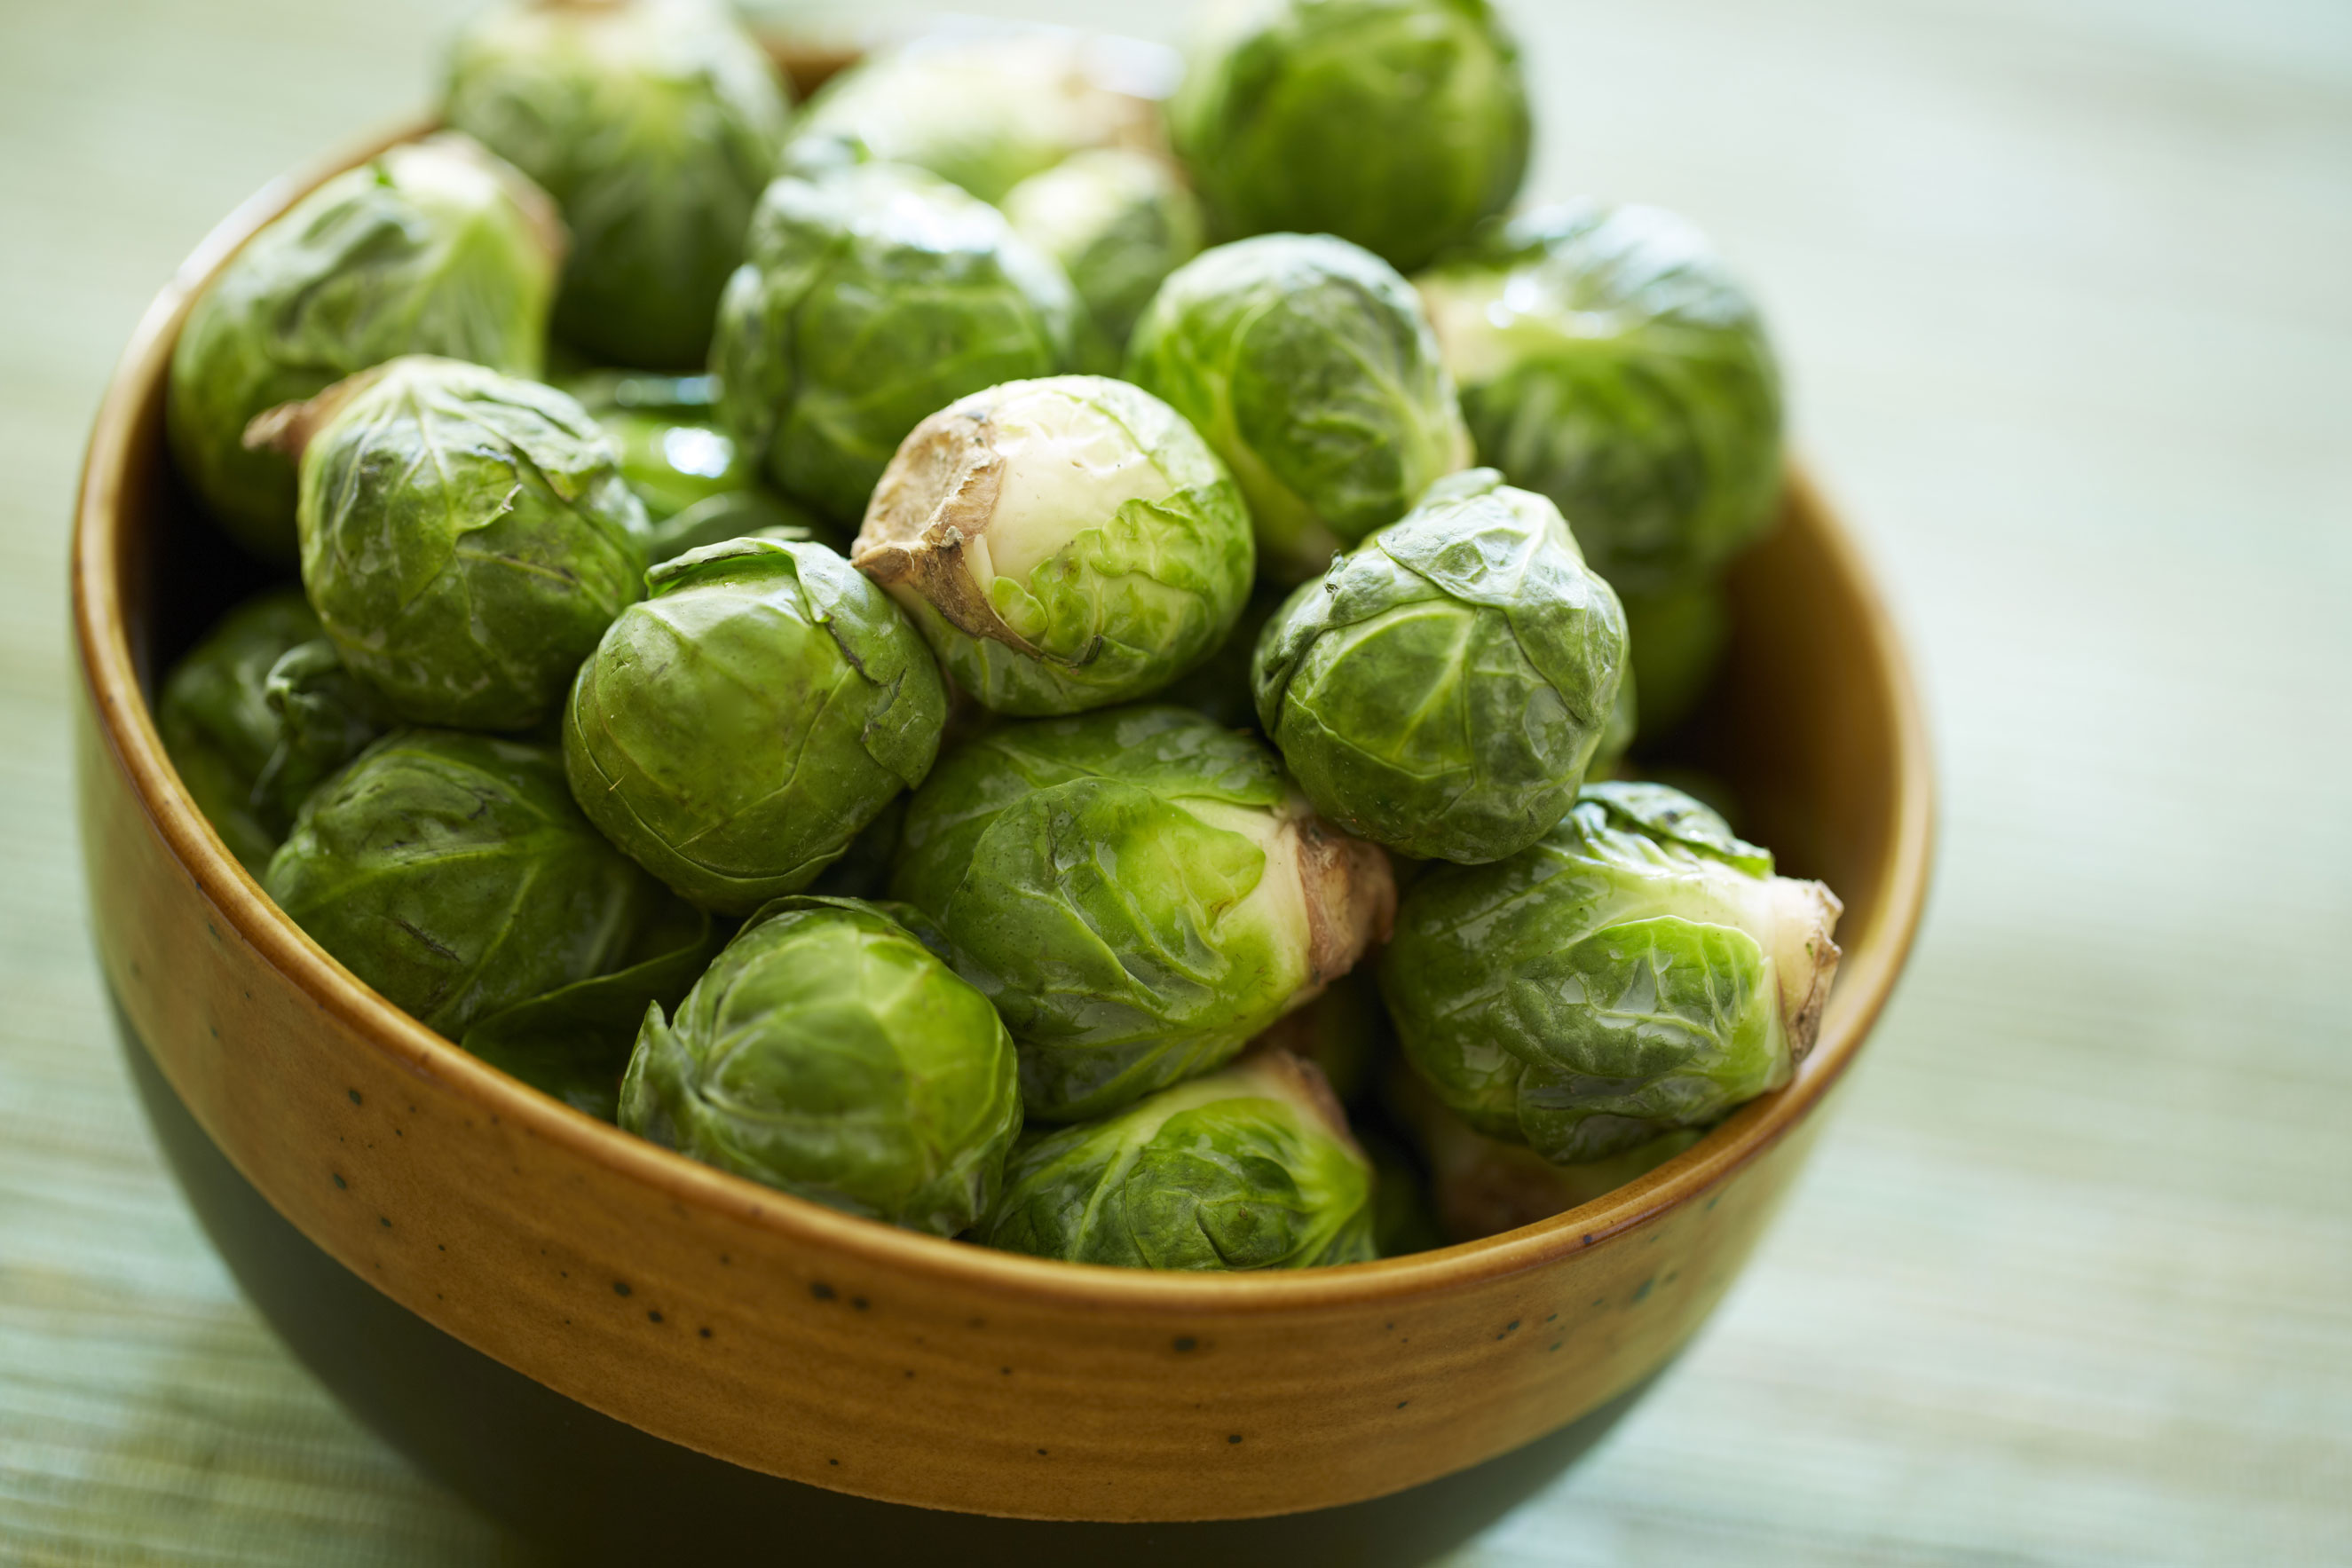 <strong>Brussels sprouts:</strong> If you still think you hate Brussels sprouts, try them now. They're sweeter than summer sprouts, she says. (Failing that, of course, try frying them with bacon.)